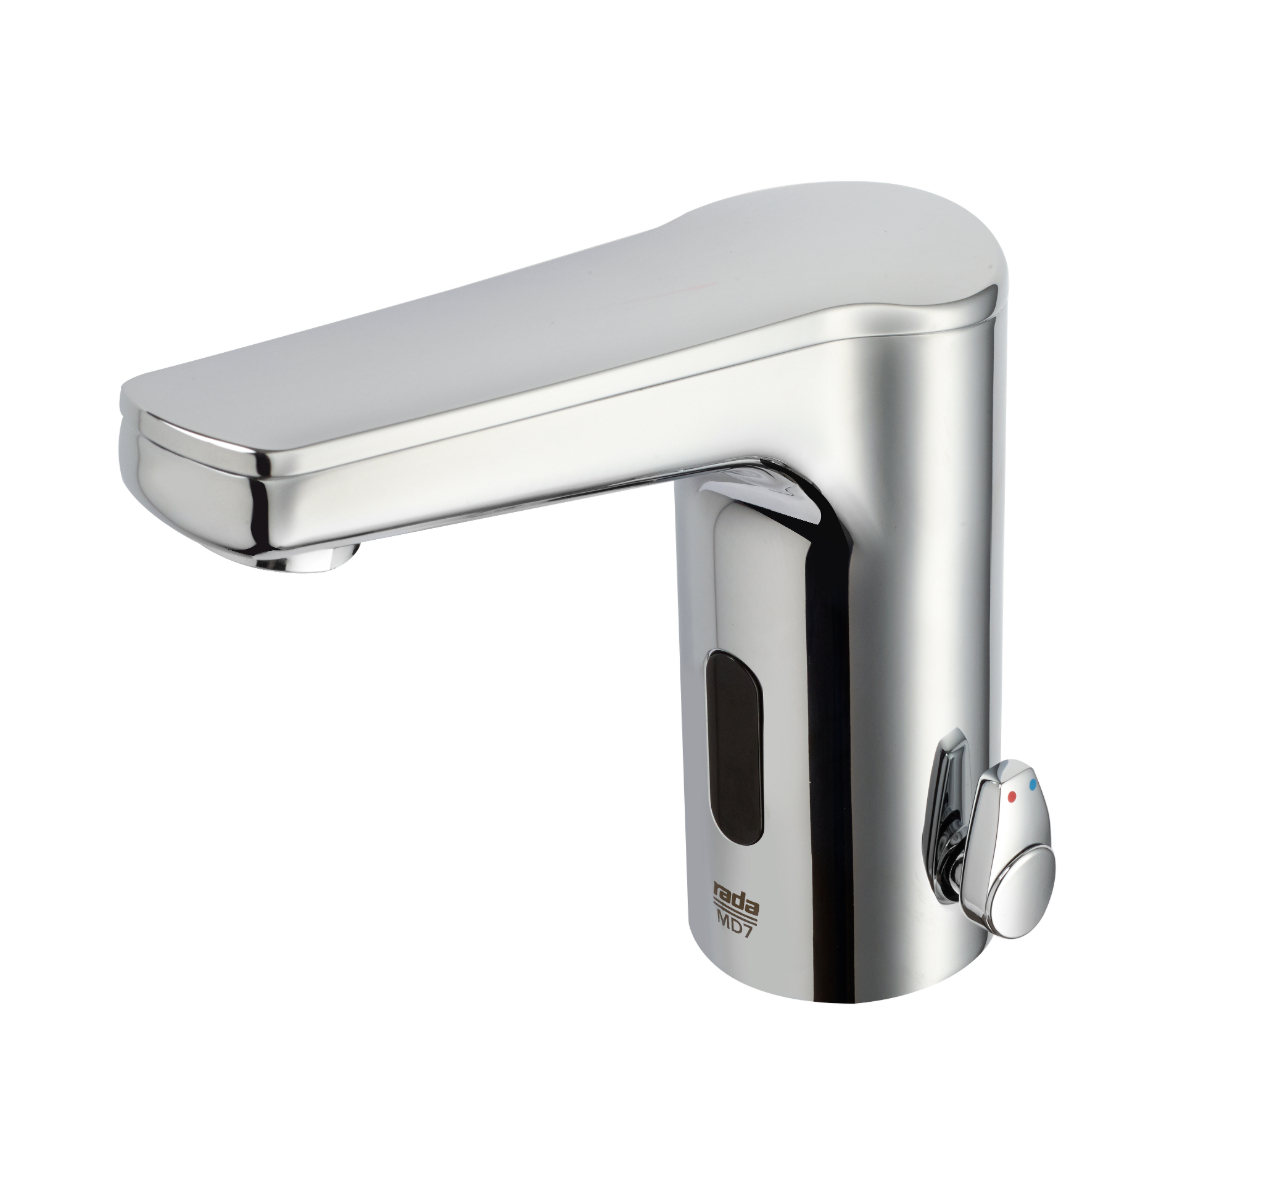 Rada MD7 washbasin sensor tap